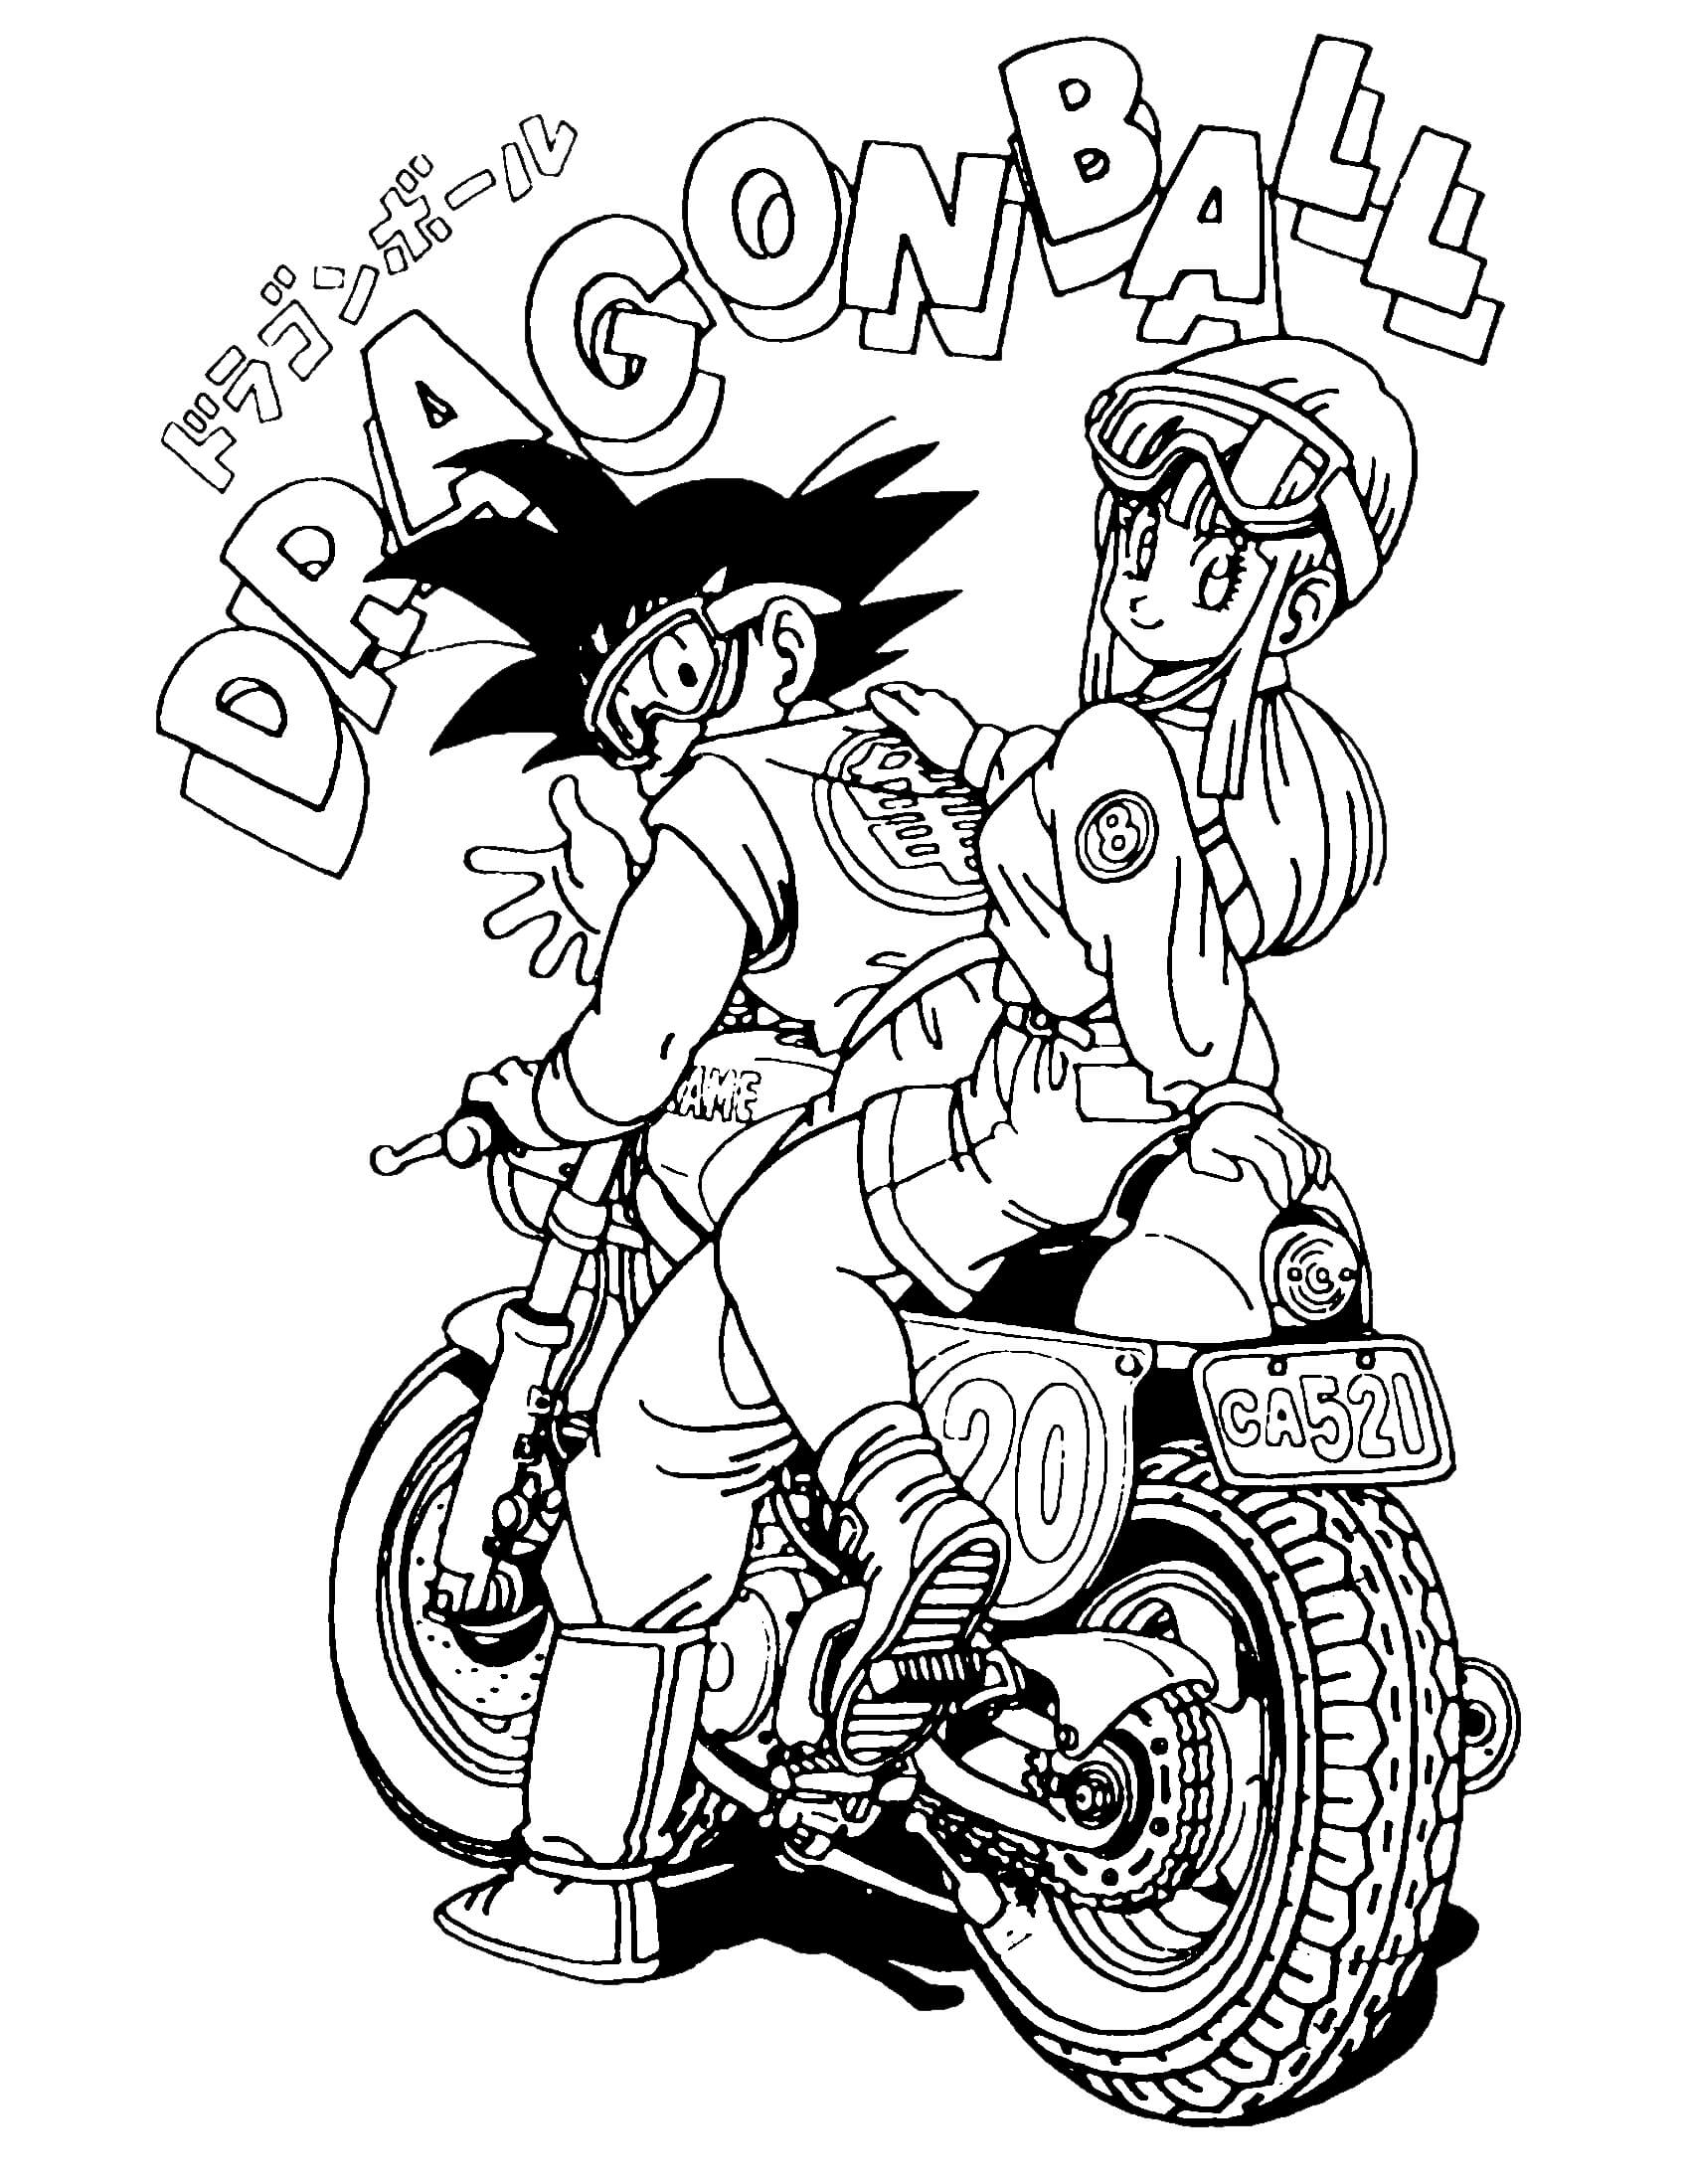 dragon ball coloring pages - Coloring Page Dragon